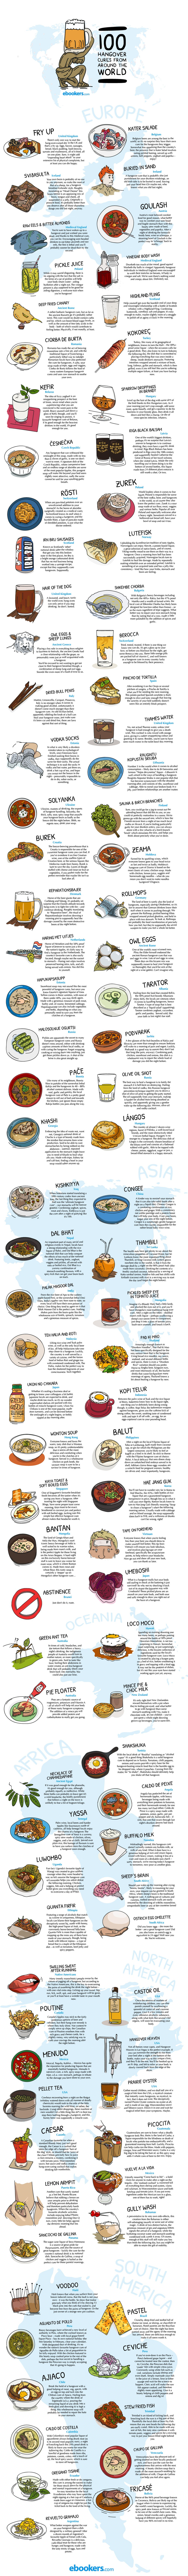 From Yum to Yuck: 100 Hangover Cures - Infographic